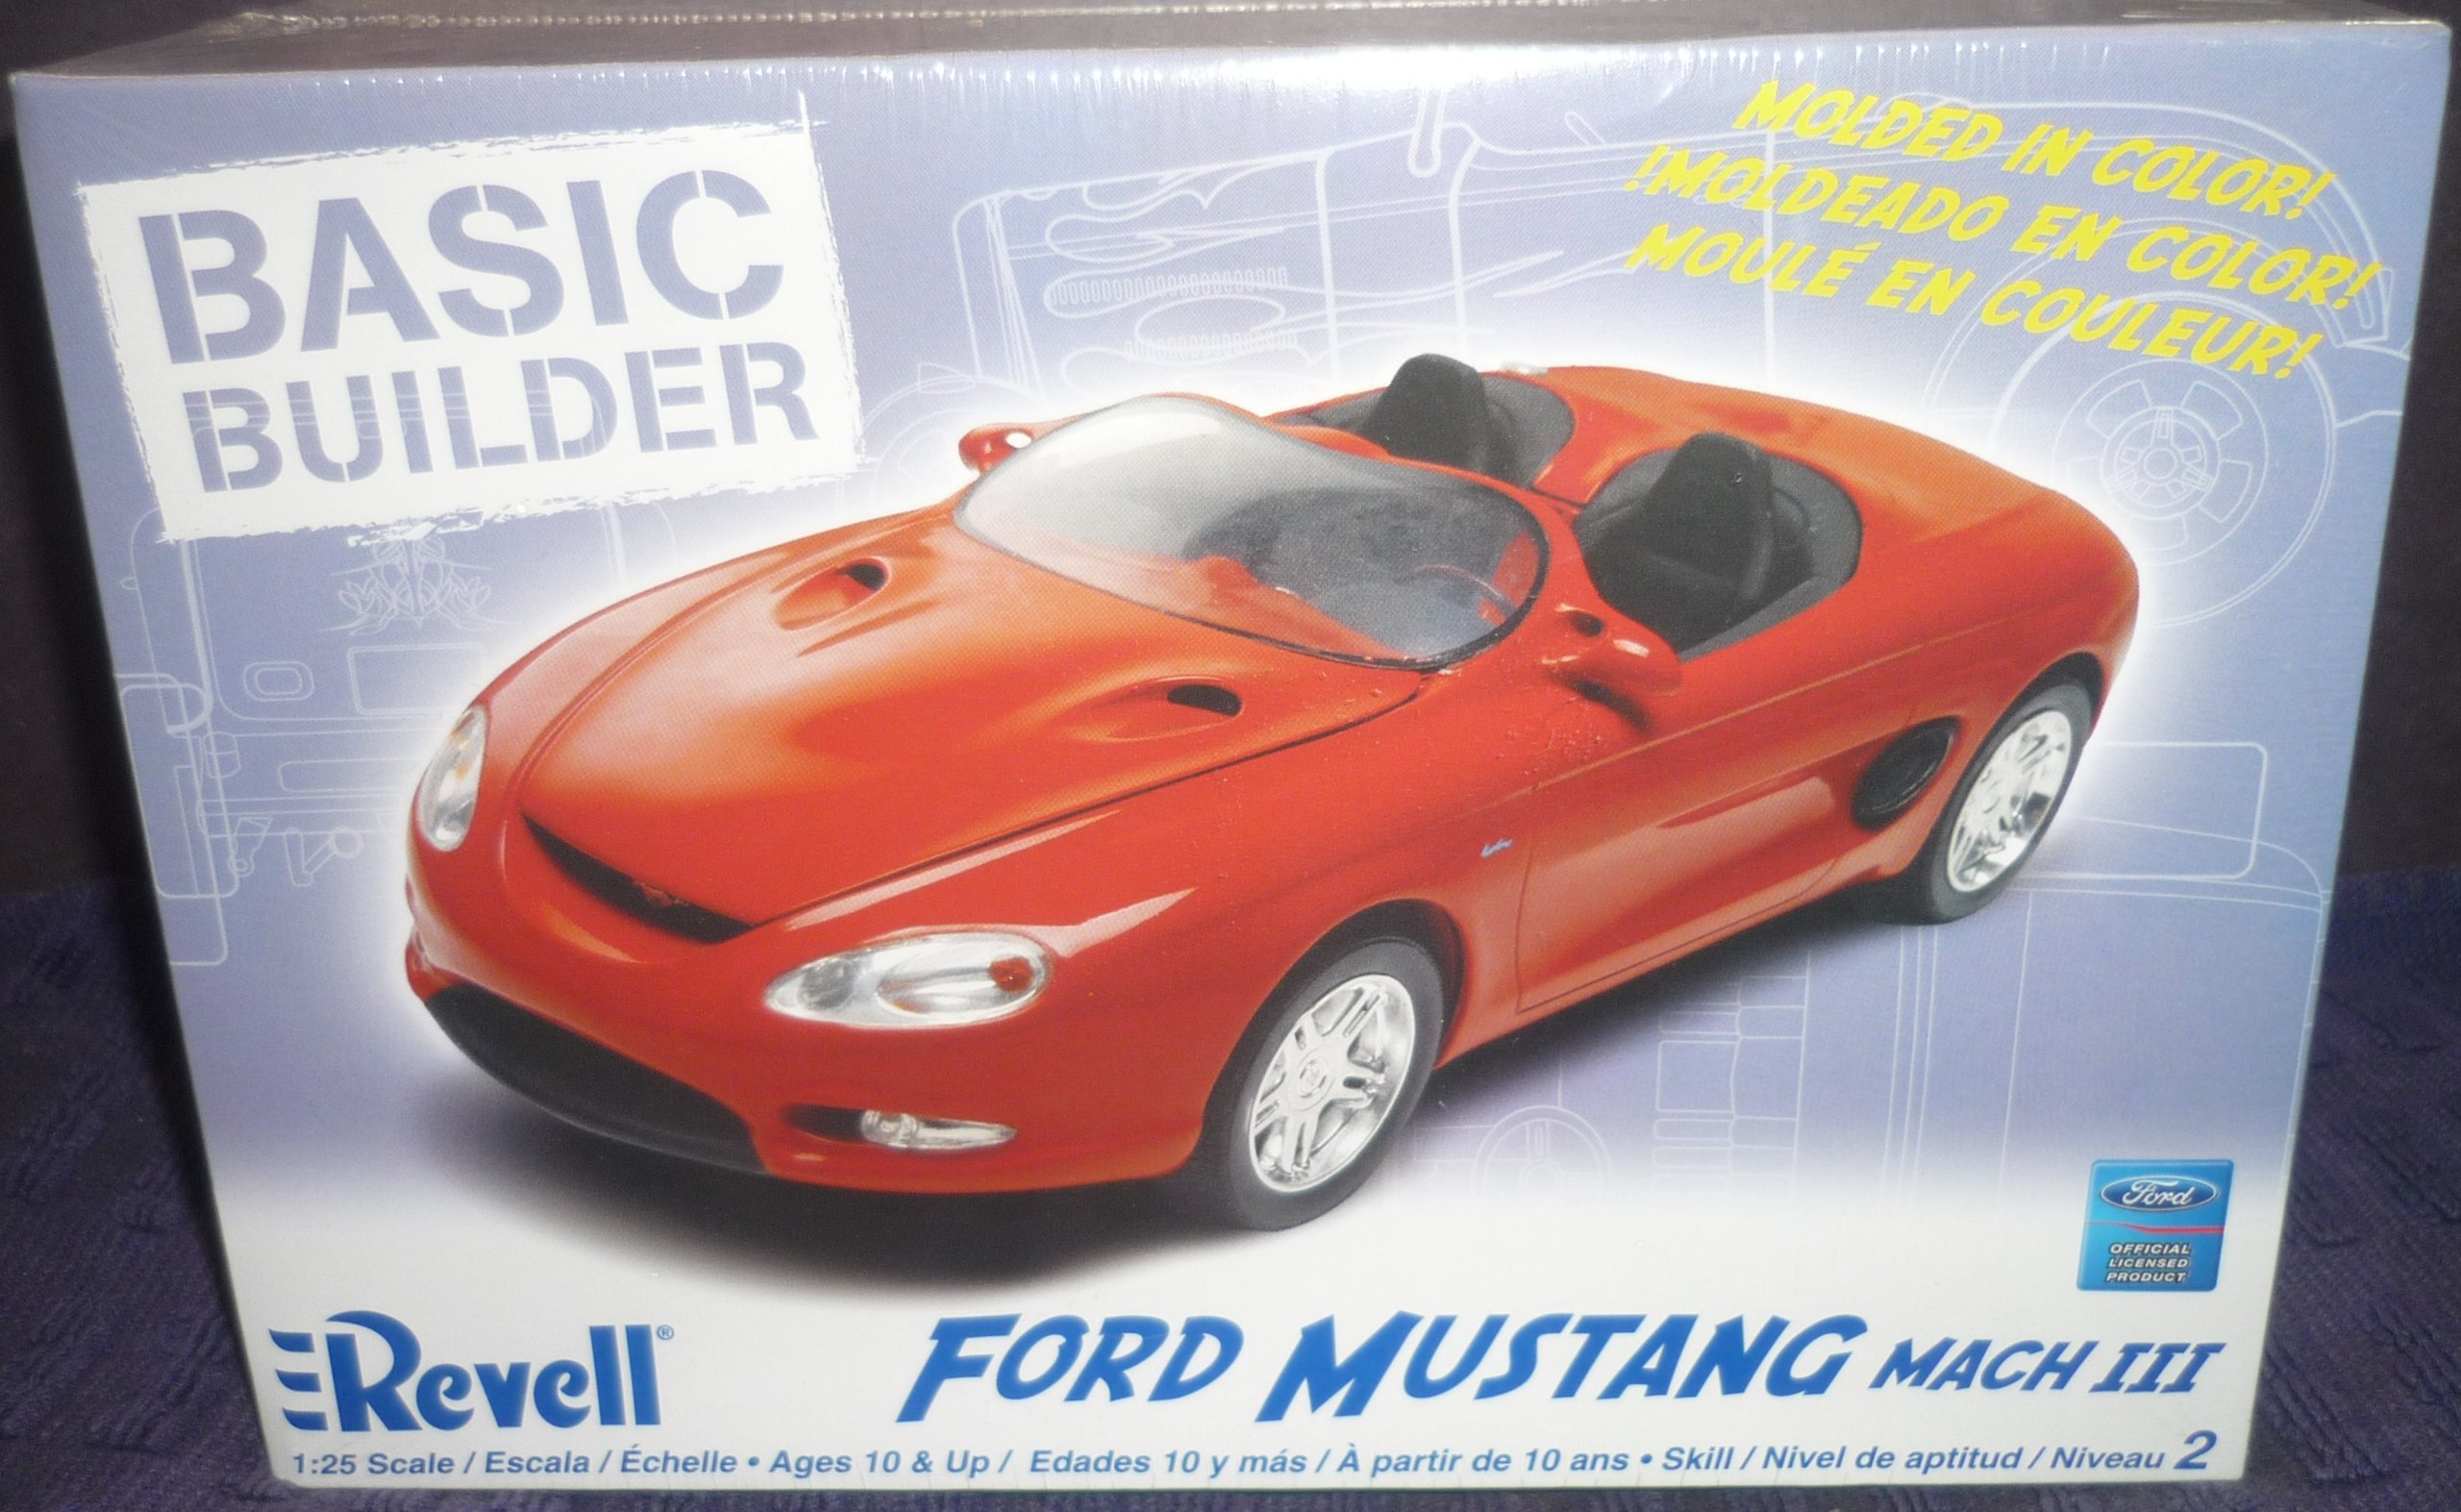 Revell 1:25 Mustang Mach III by